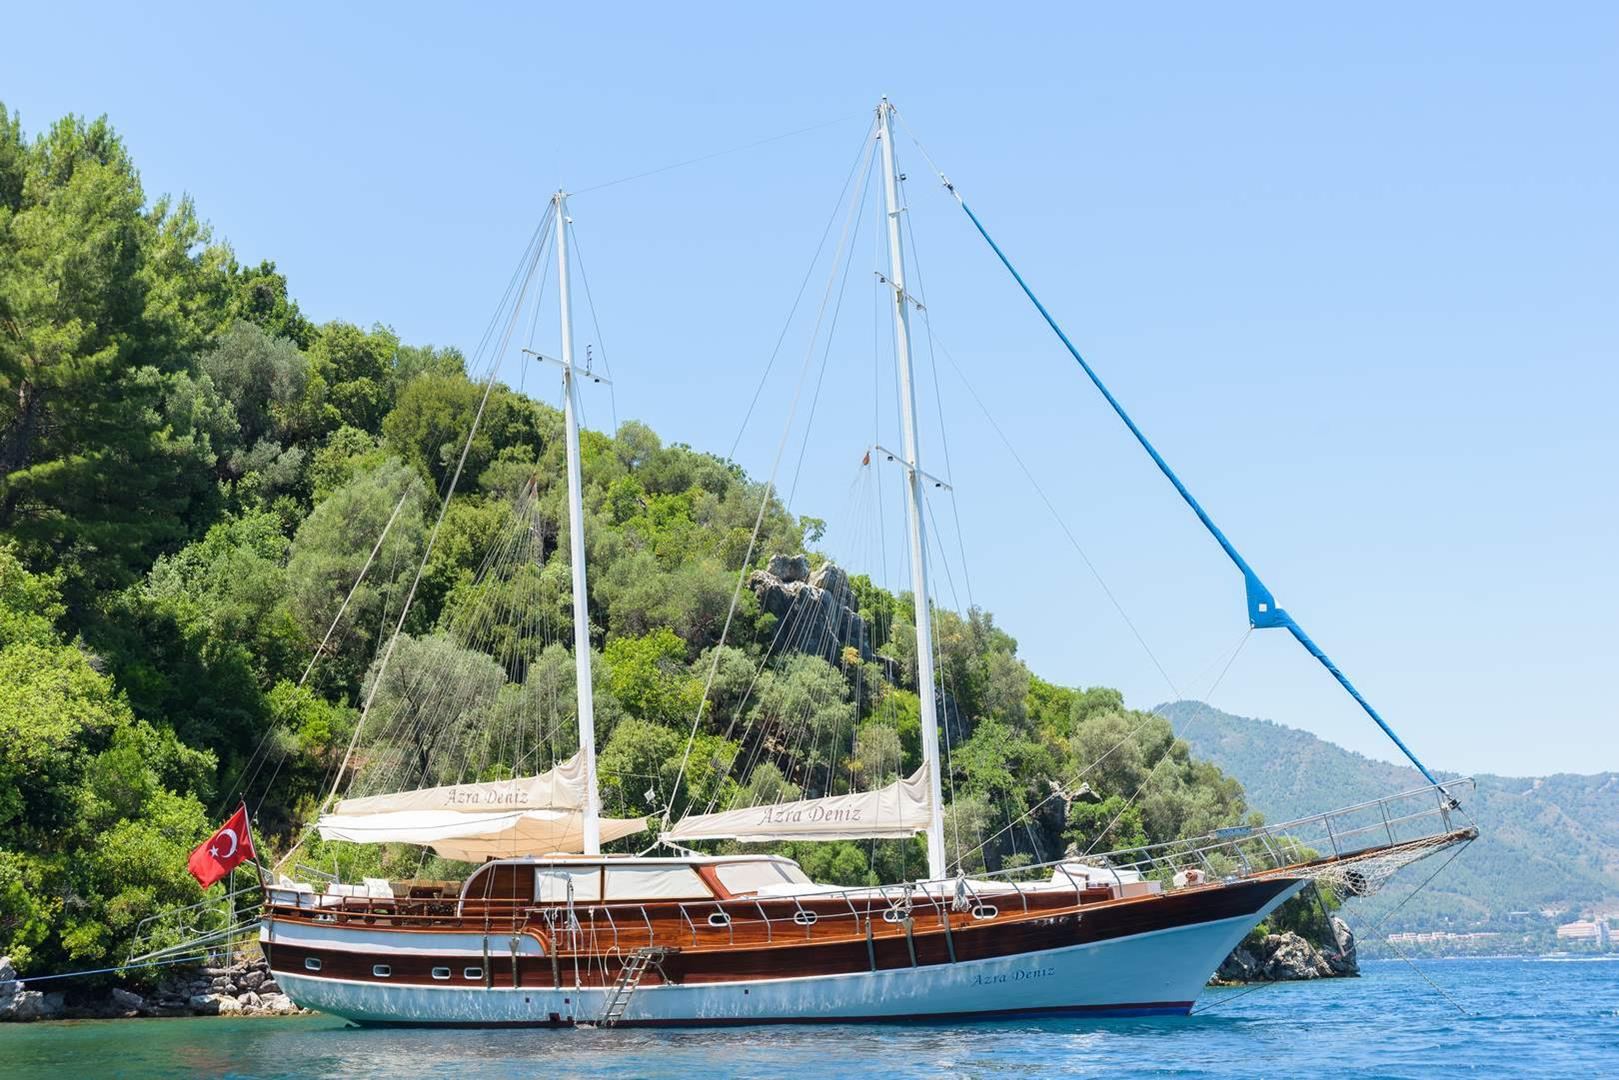 Azra Deniz: 77ft  KETCH RIGGED AYNAKIC GULET - Luxury for twelve guests -  Lying: Turkey